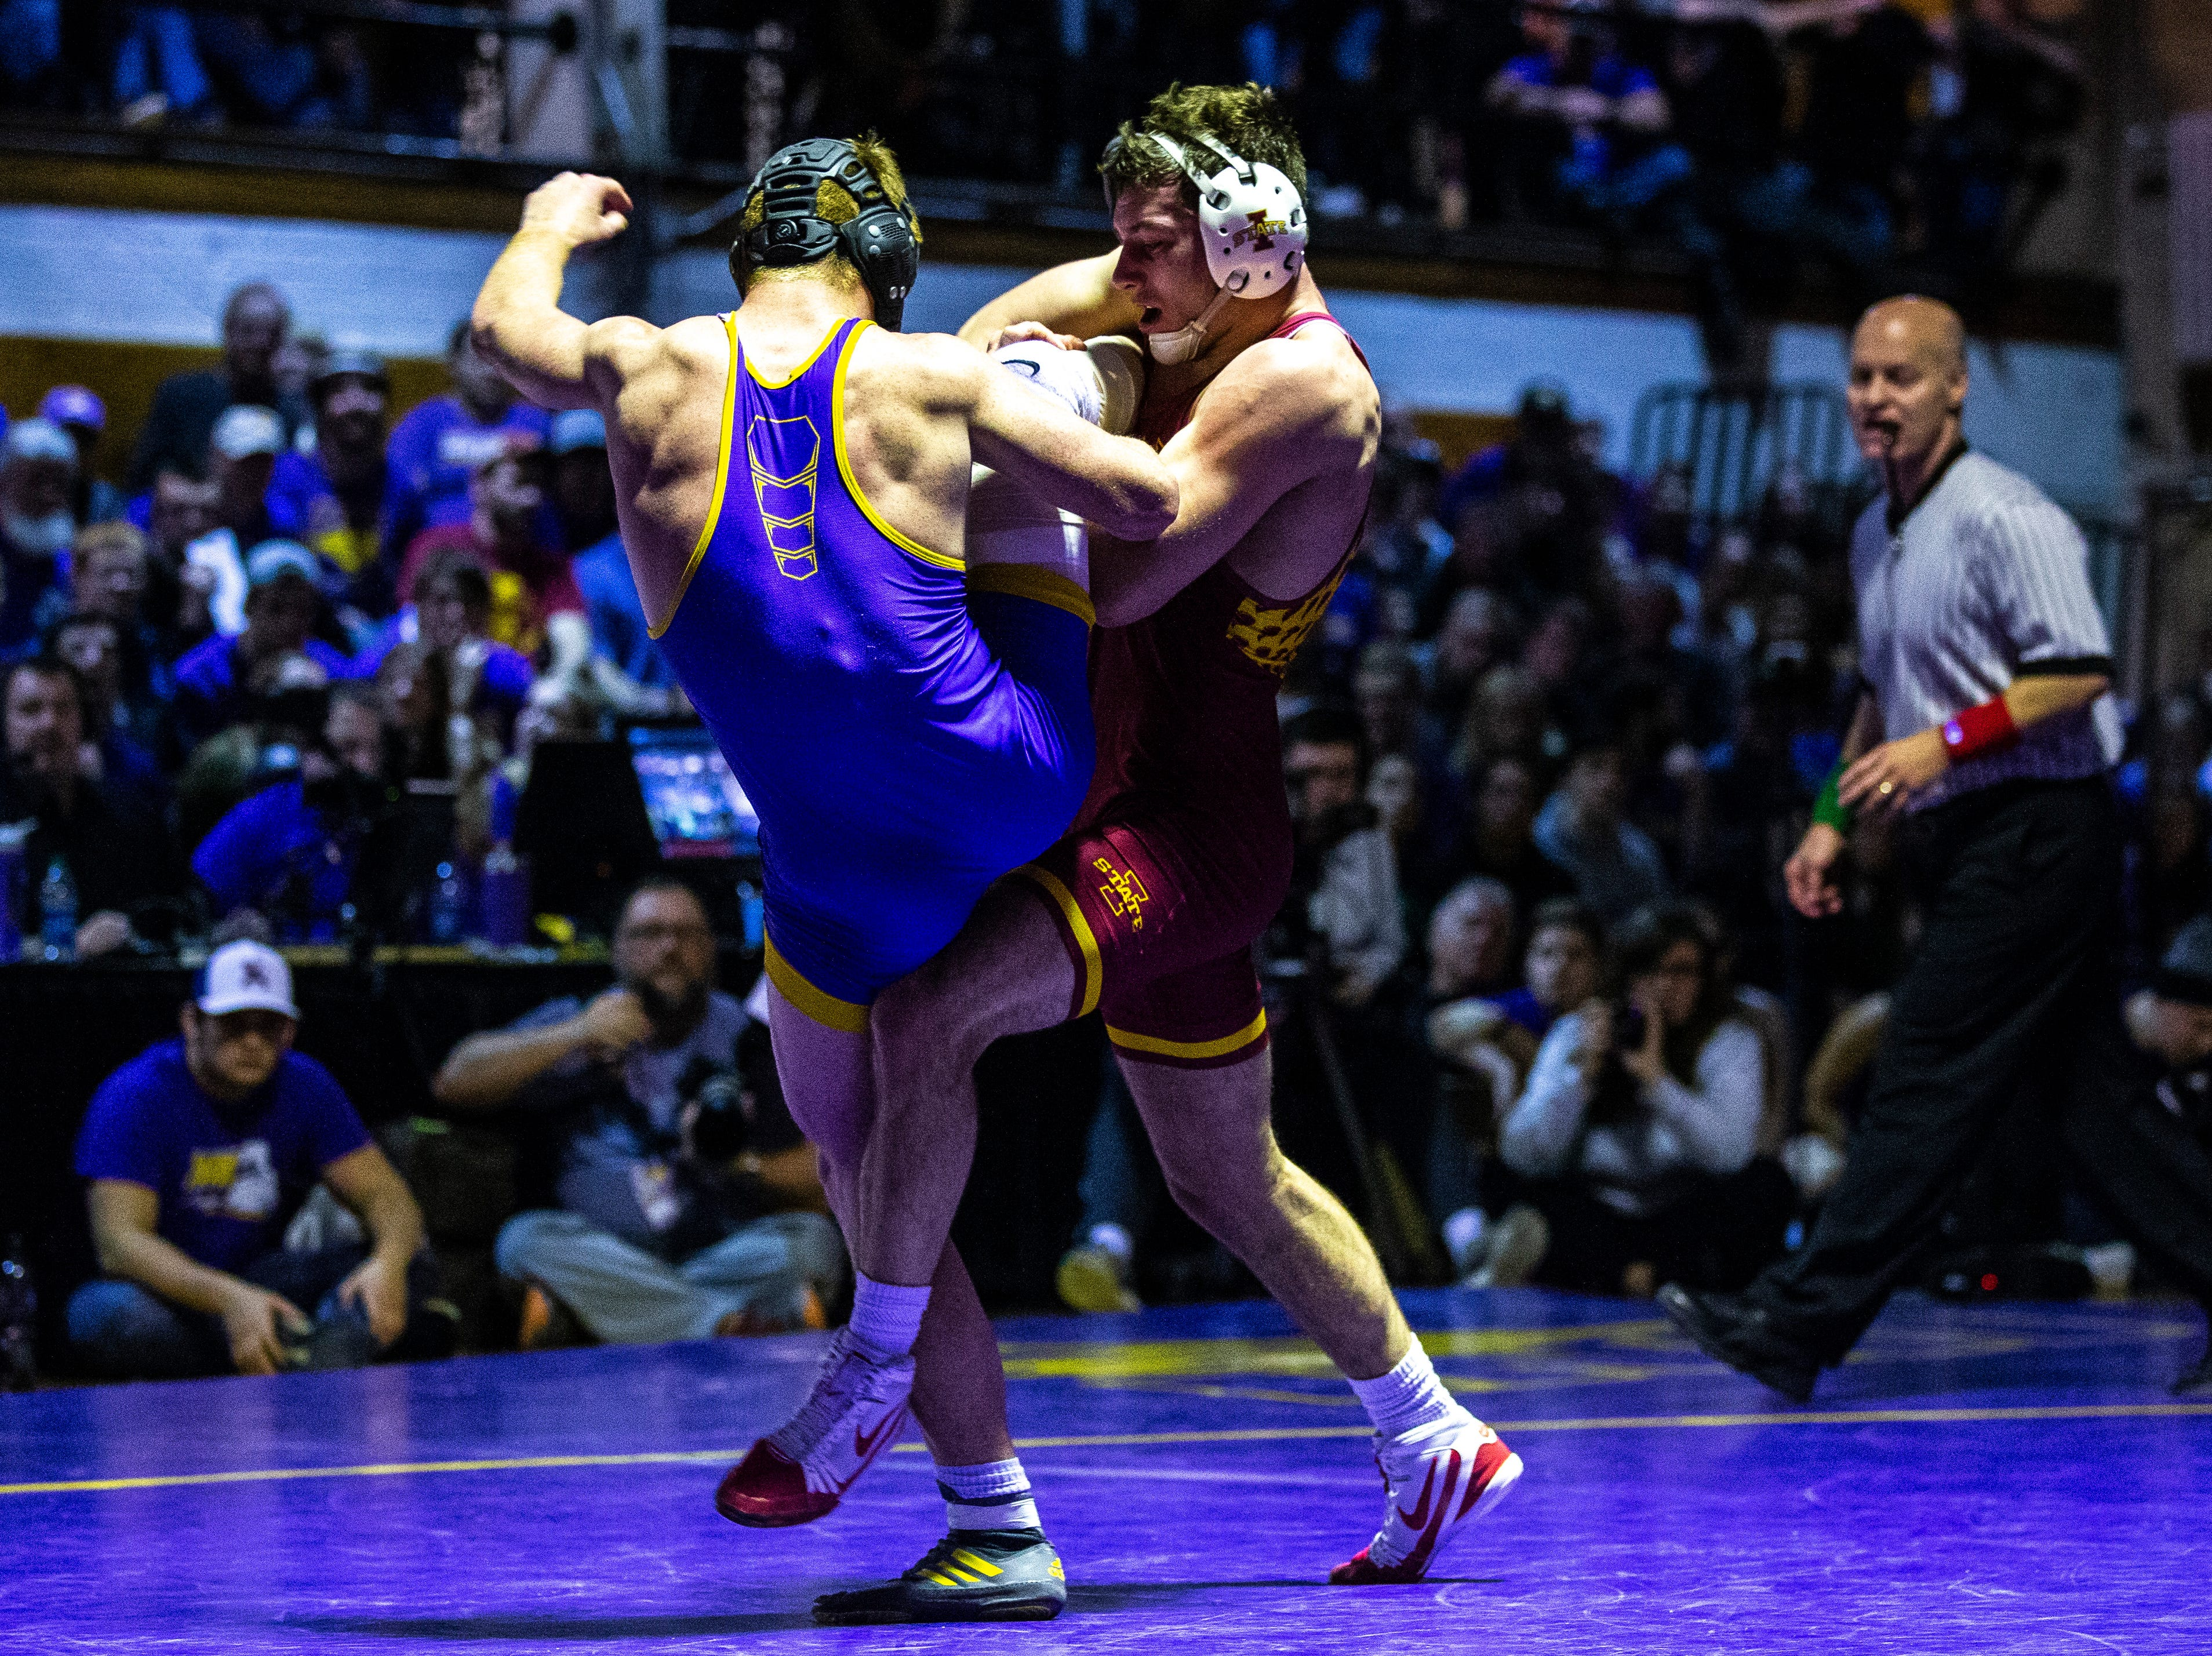 Northern Iowa's Paden Moore wrestles Iowa State's Chase Straw at 157 during a NCAA Big 12 wrestling dual on Thursday, Feb. 21, 2019 at the West Gymnasium in Cedar Falls, Iowa.